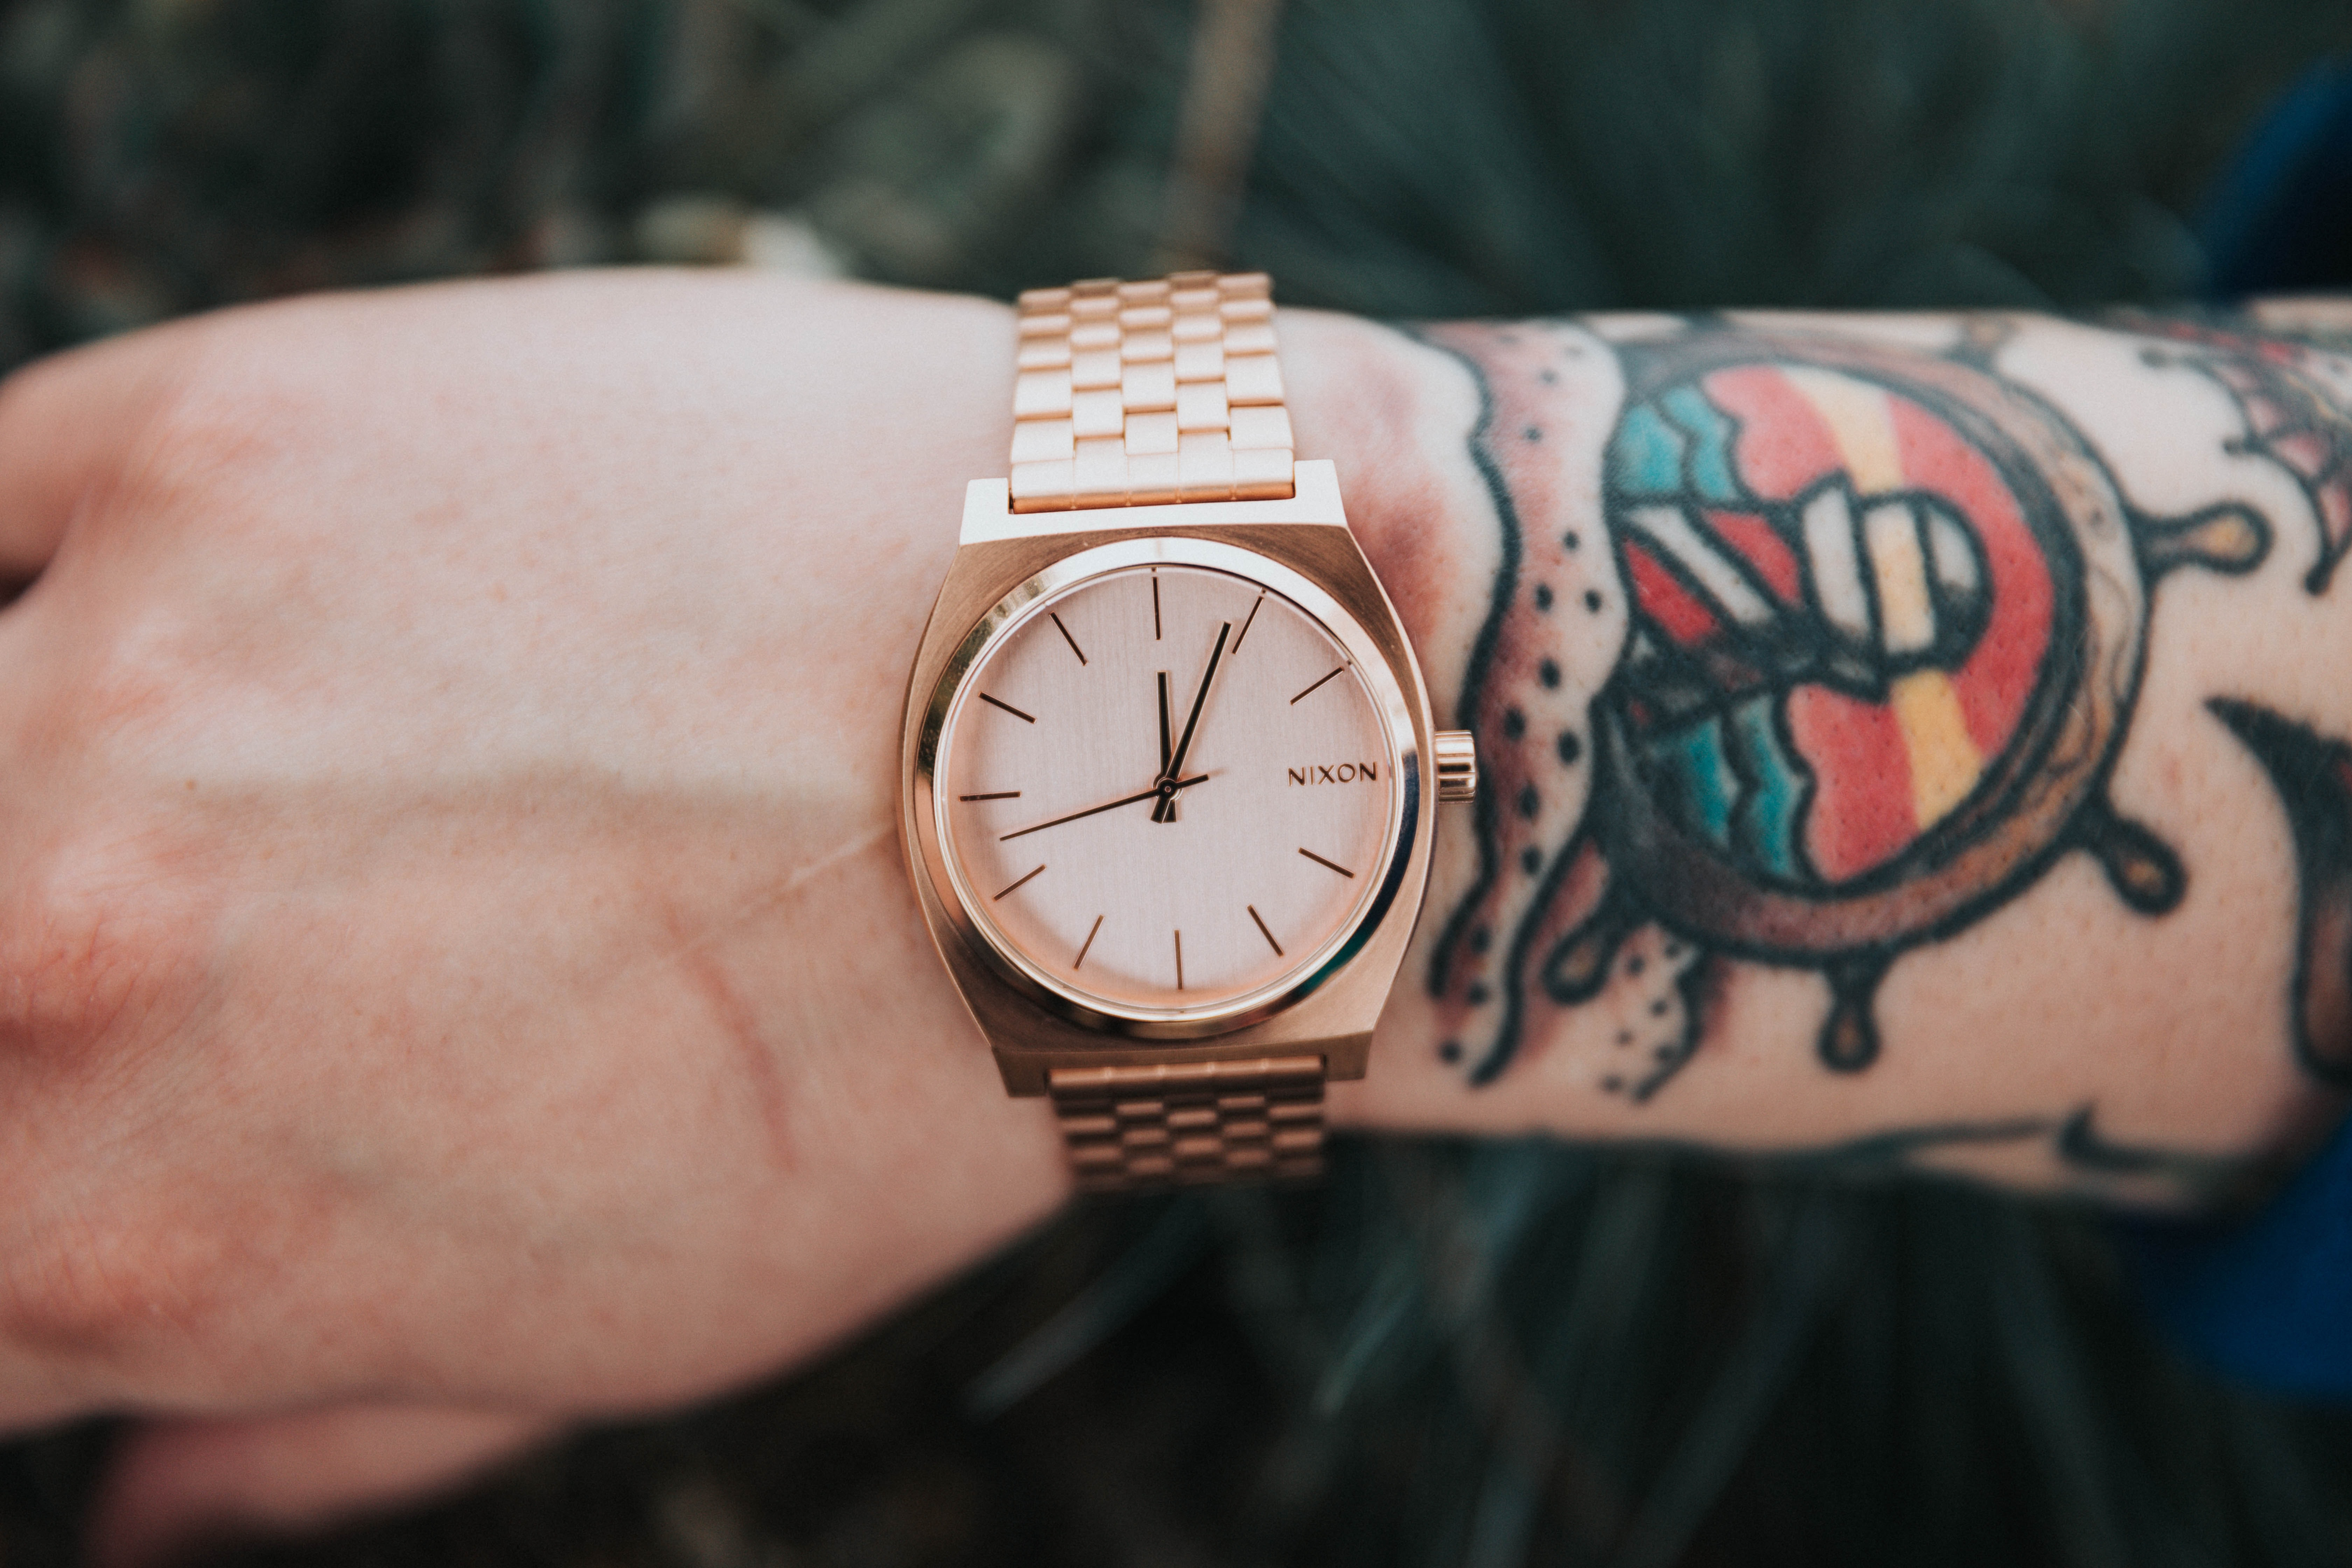 person wearing round gold-colored analog watch display at 12:04 o'clock